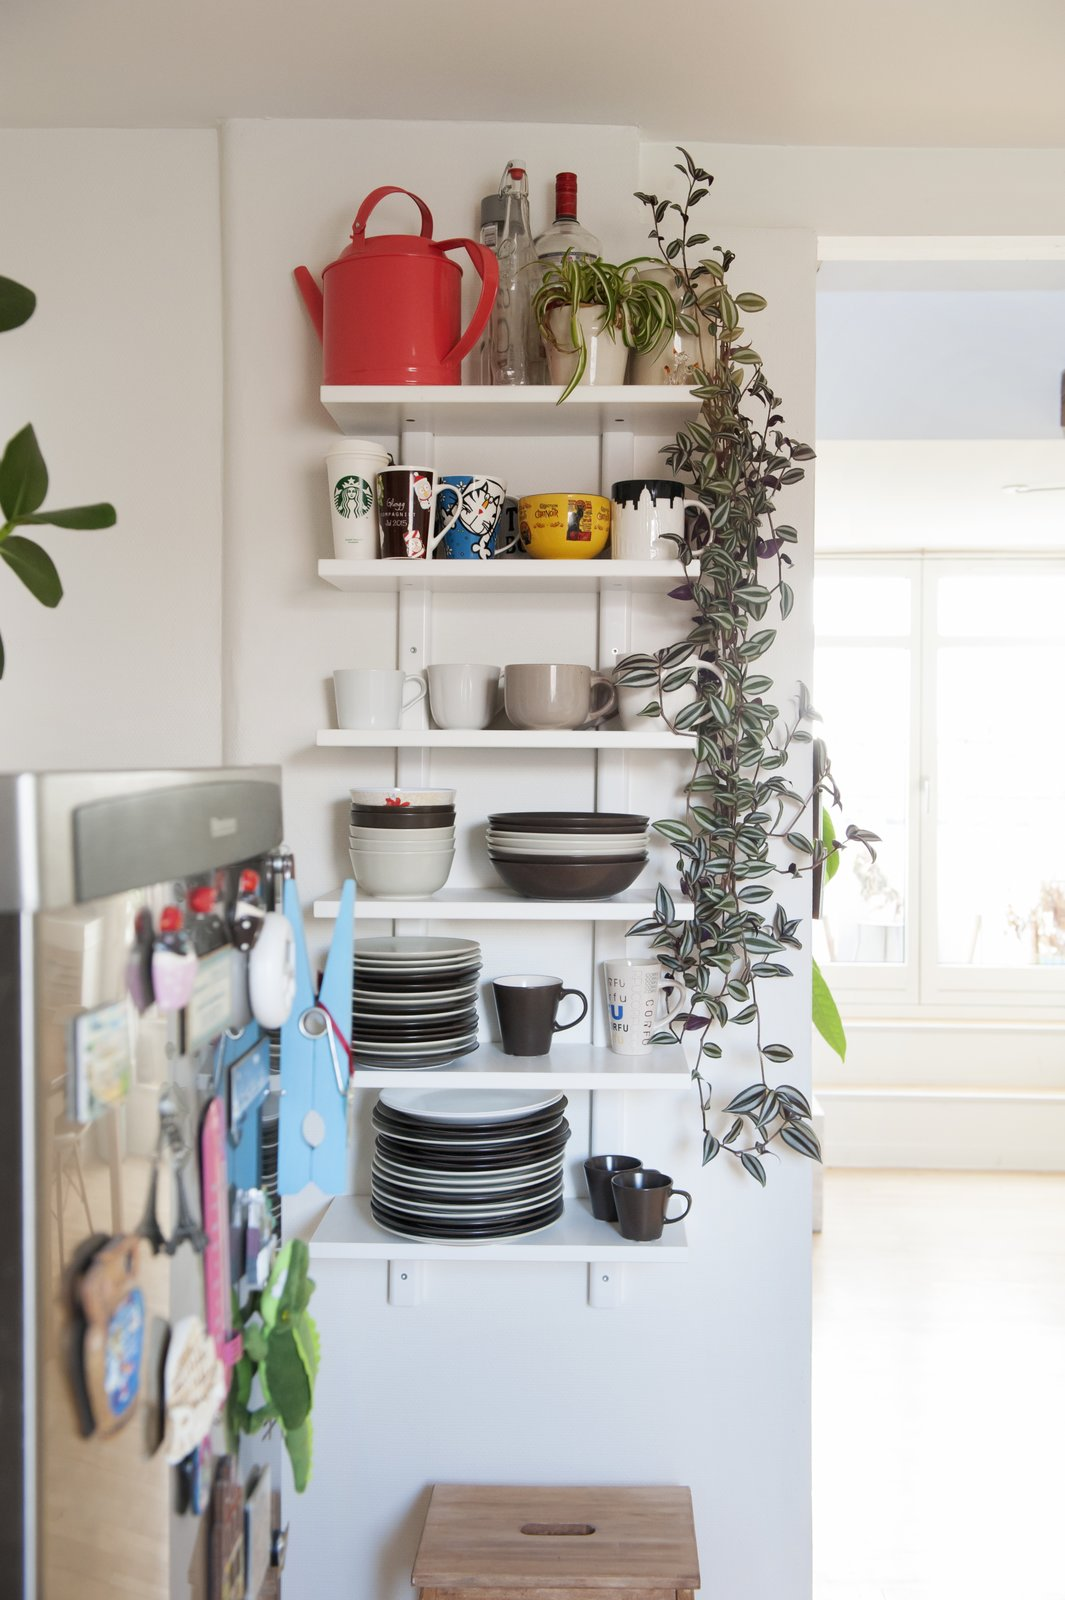 Kitchen and Refrigerator open kitchen shelving with climbing plant  Bringing Nature Inside by Petra Ford